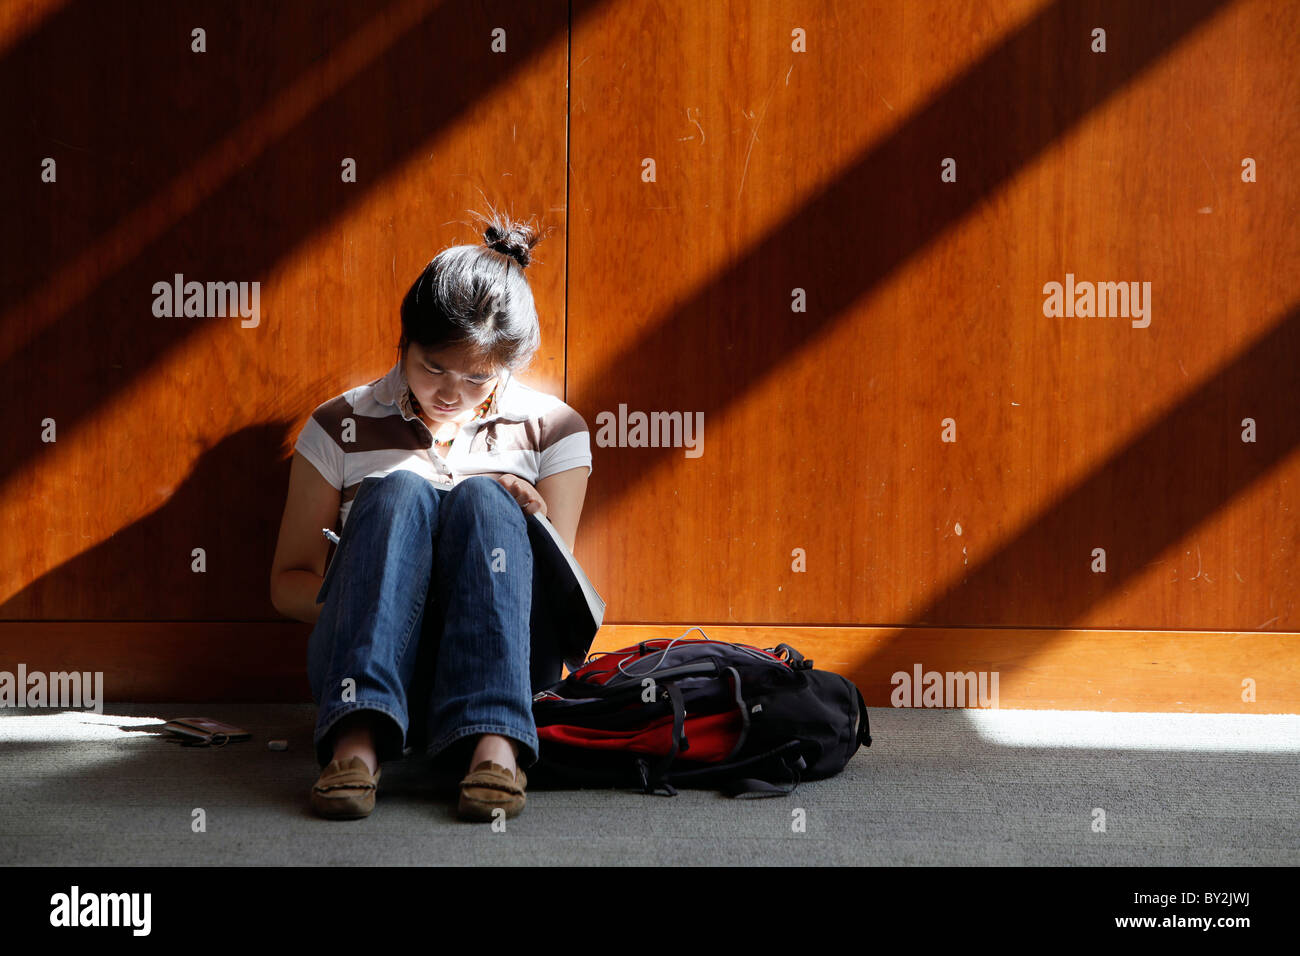 An American high school student reading outside class - Stock Image